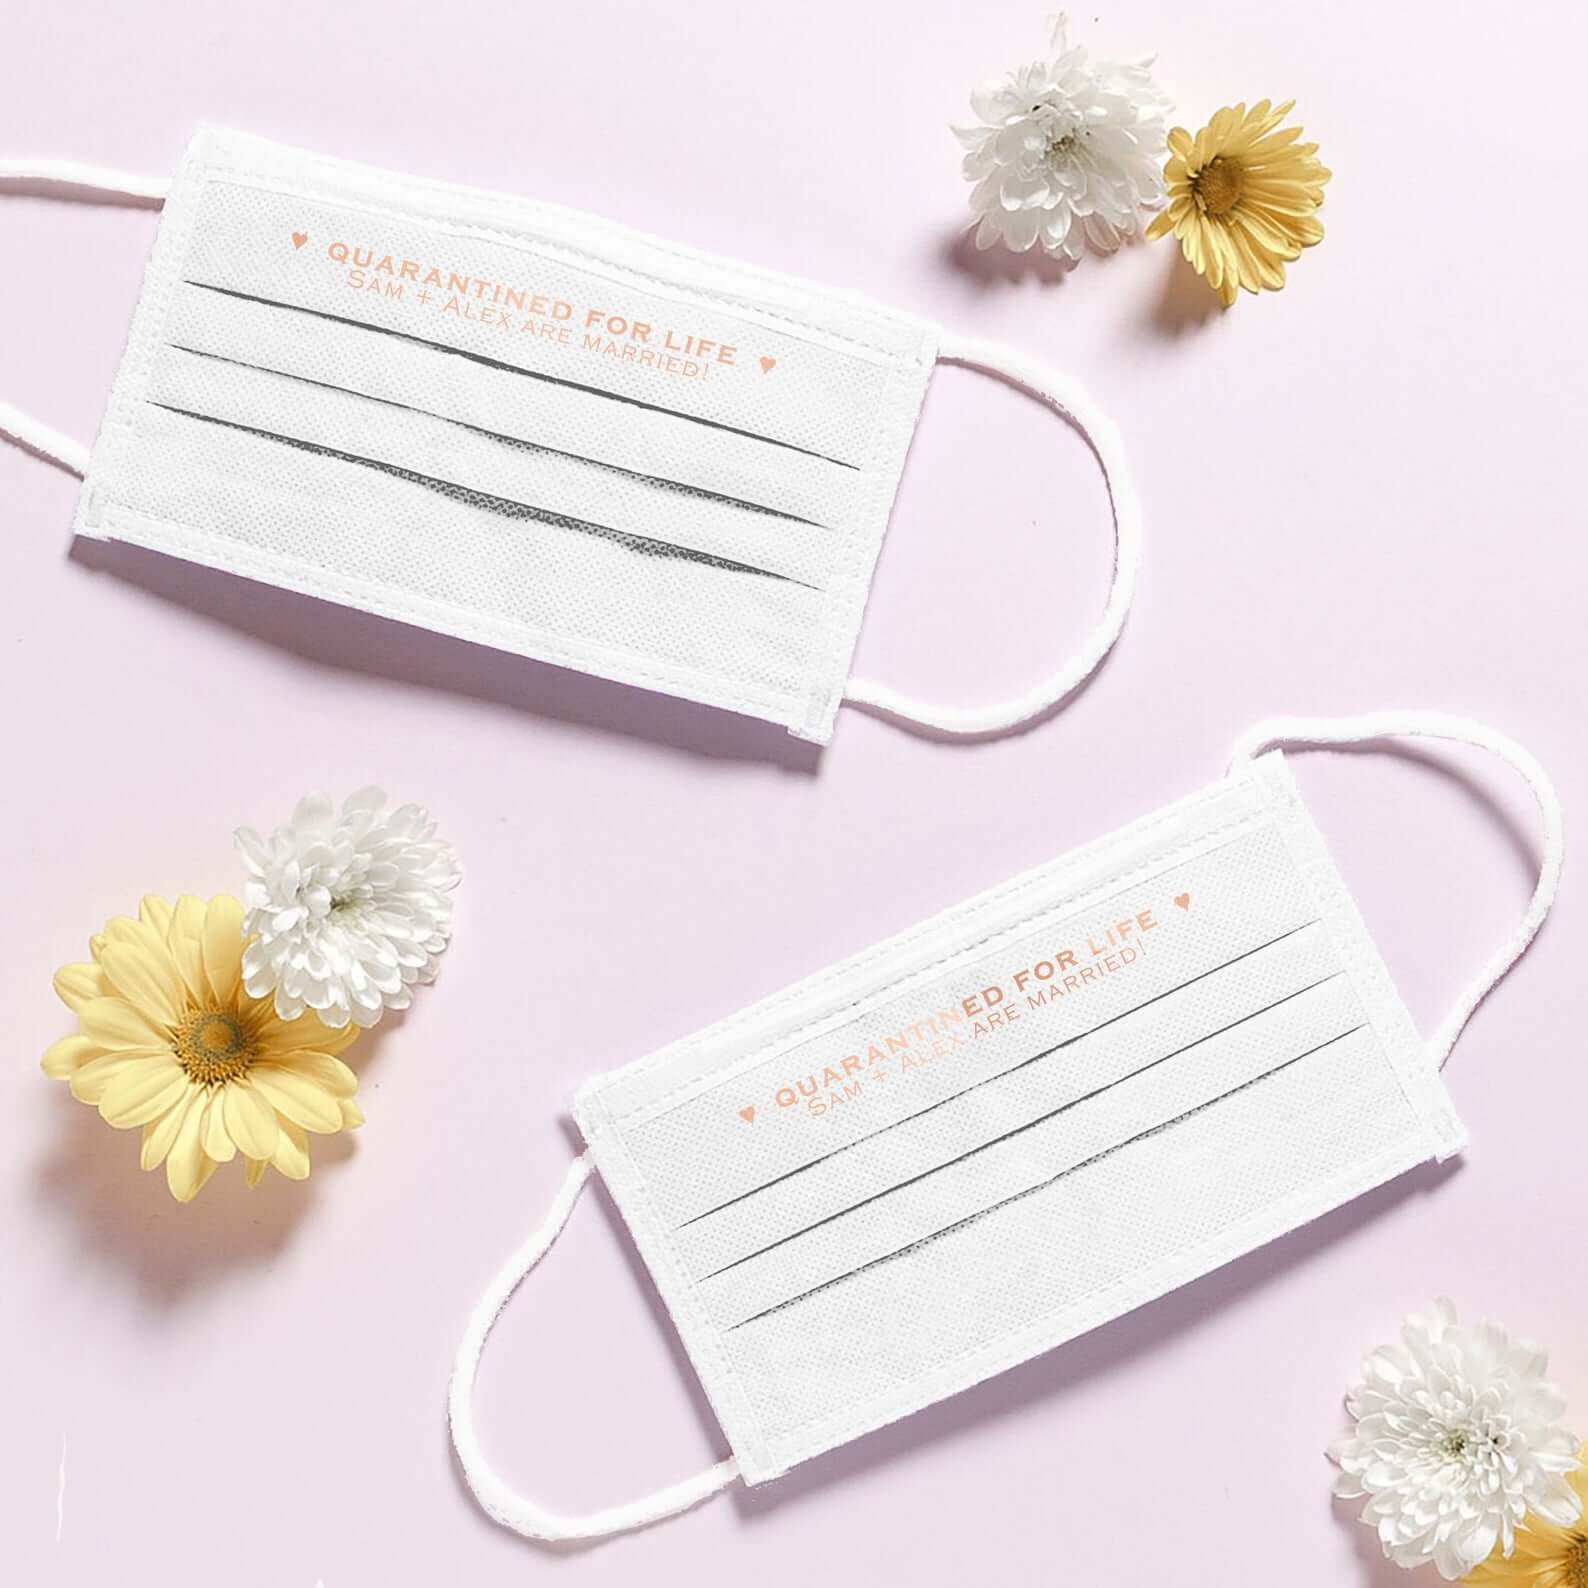 Face Masks For Wedding Guests To Wear Advice Emmaline Bride